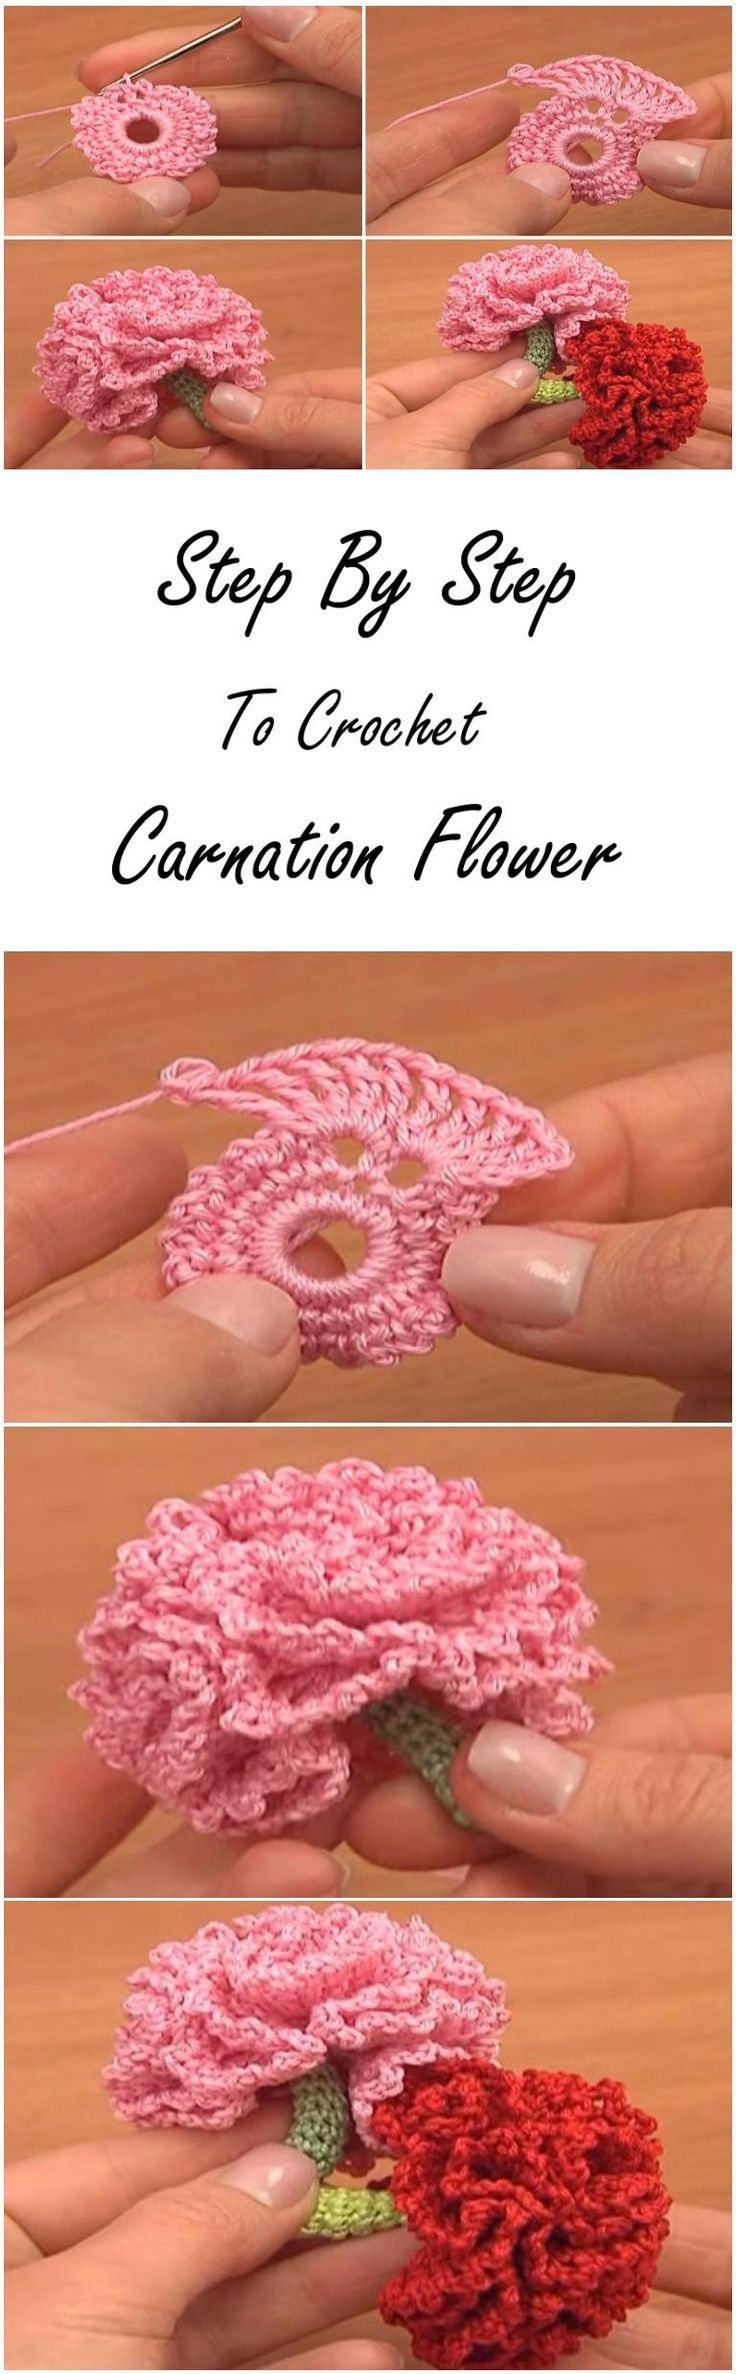 step by step to crochet carnation flower